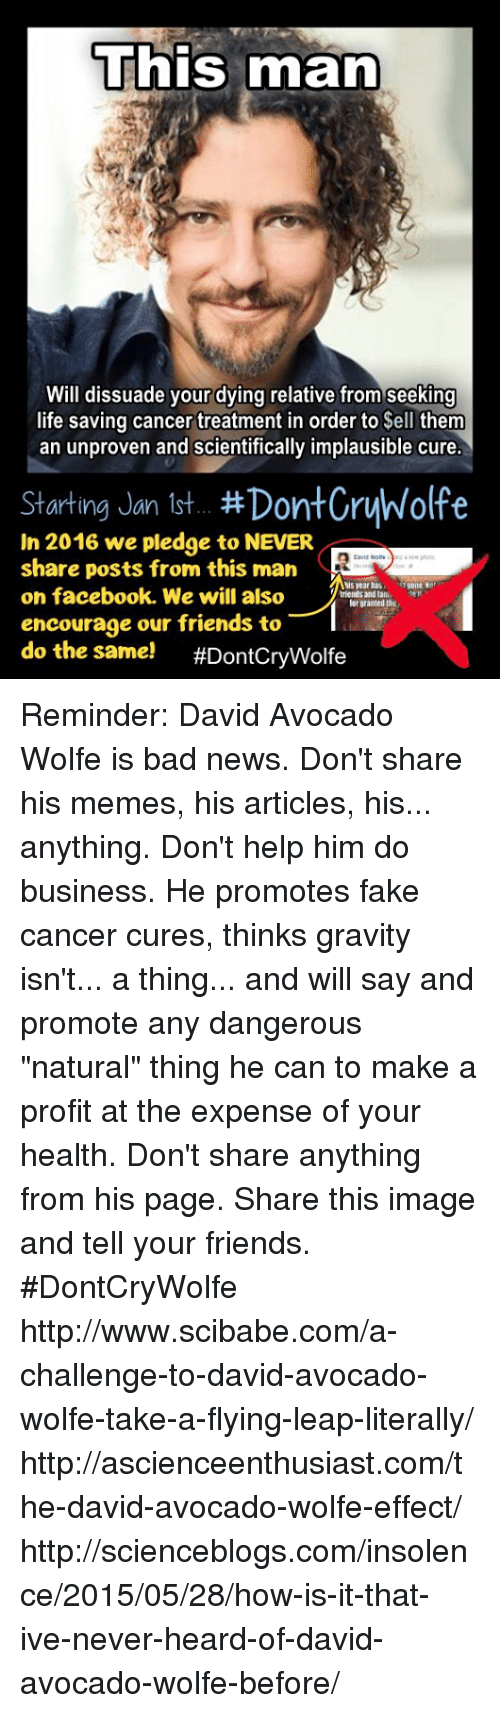 """insolence: This man  Will dissuade your dying relative from seeking  life saving cancer treatment in order to $ell them  an unproven and scientifically implausible cure.  Starting Jan 1st  #DontCryWolfe  In 2016 we pledge to NEVER  share posts from this man  on facebook. We will also  Iriends and Ian,  granted the  encourage our friends to  do the same!  #DontCry Wolfe Reminder: David Avocado Wolfe is bad news. Don't share his memes, his articles, his... anything. Don't help him do business.  He promotes fake cancer cures, thinks gravity isn't... a thing... and will say and promote any dangerous """"natural"""" thing he can to make a profit at the expense of your health.   Don't share anything from his page. Share this image and tell your friends. #DontCryWolfe  http://www.scibabe.com/a-challenge-to-david-avocado-wolfe-take-a-flying-leap-literally/  http://ascienceenthusiast.com/the-david-avocado-wolfe-effect/  http://scienceblogs.com/insolence/2015/05/28/how-is-it-that-ive-never-heard-of-david-avocado-wolfe-before/"""